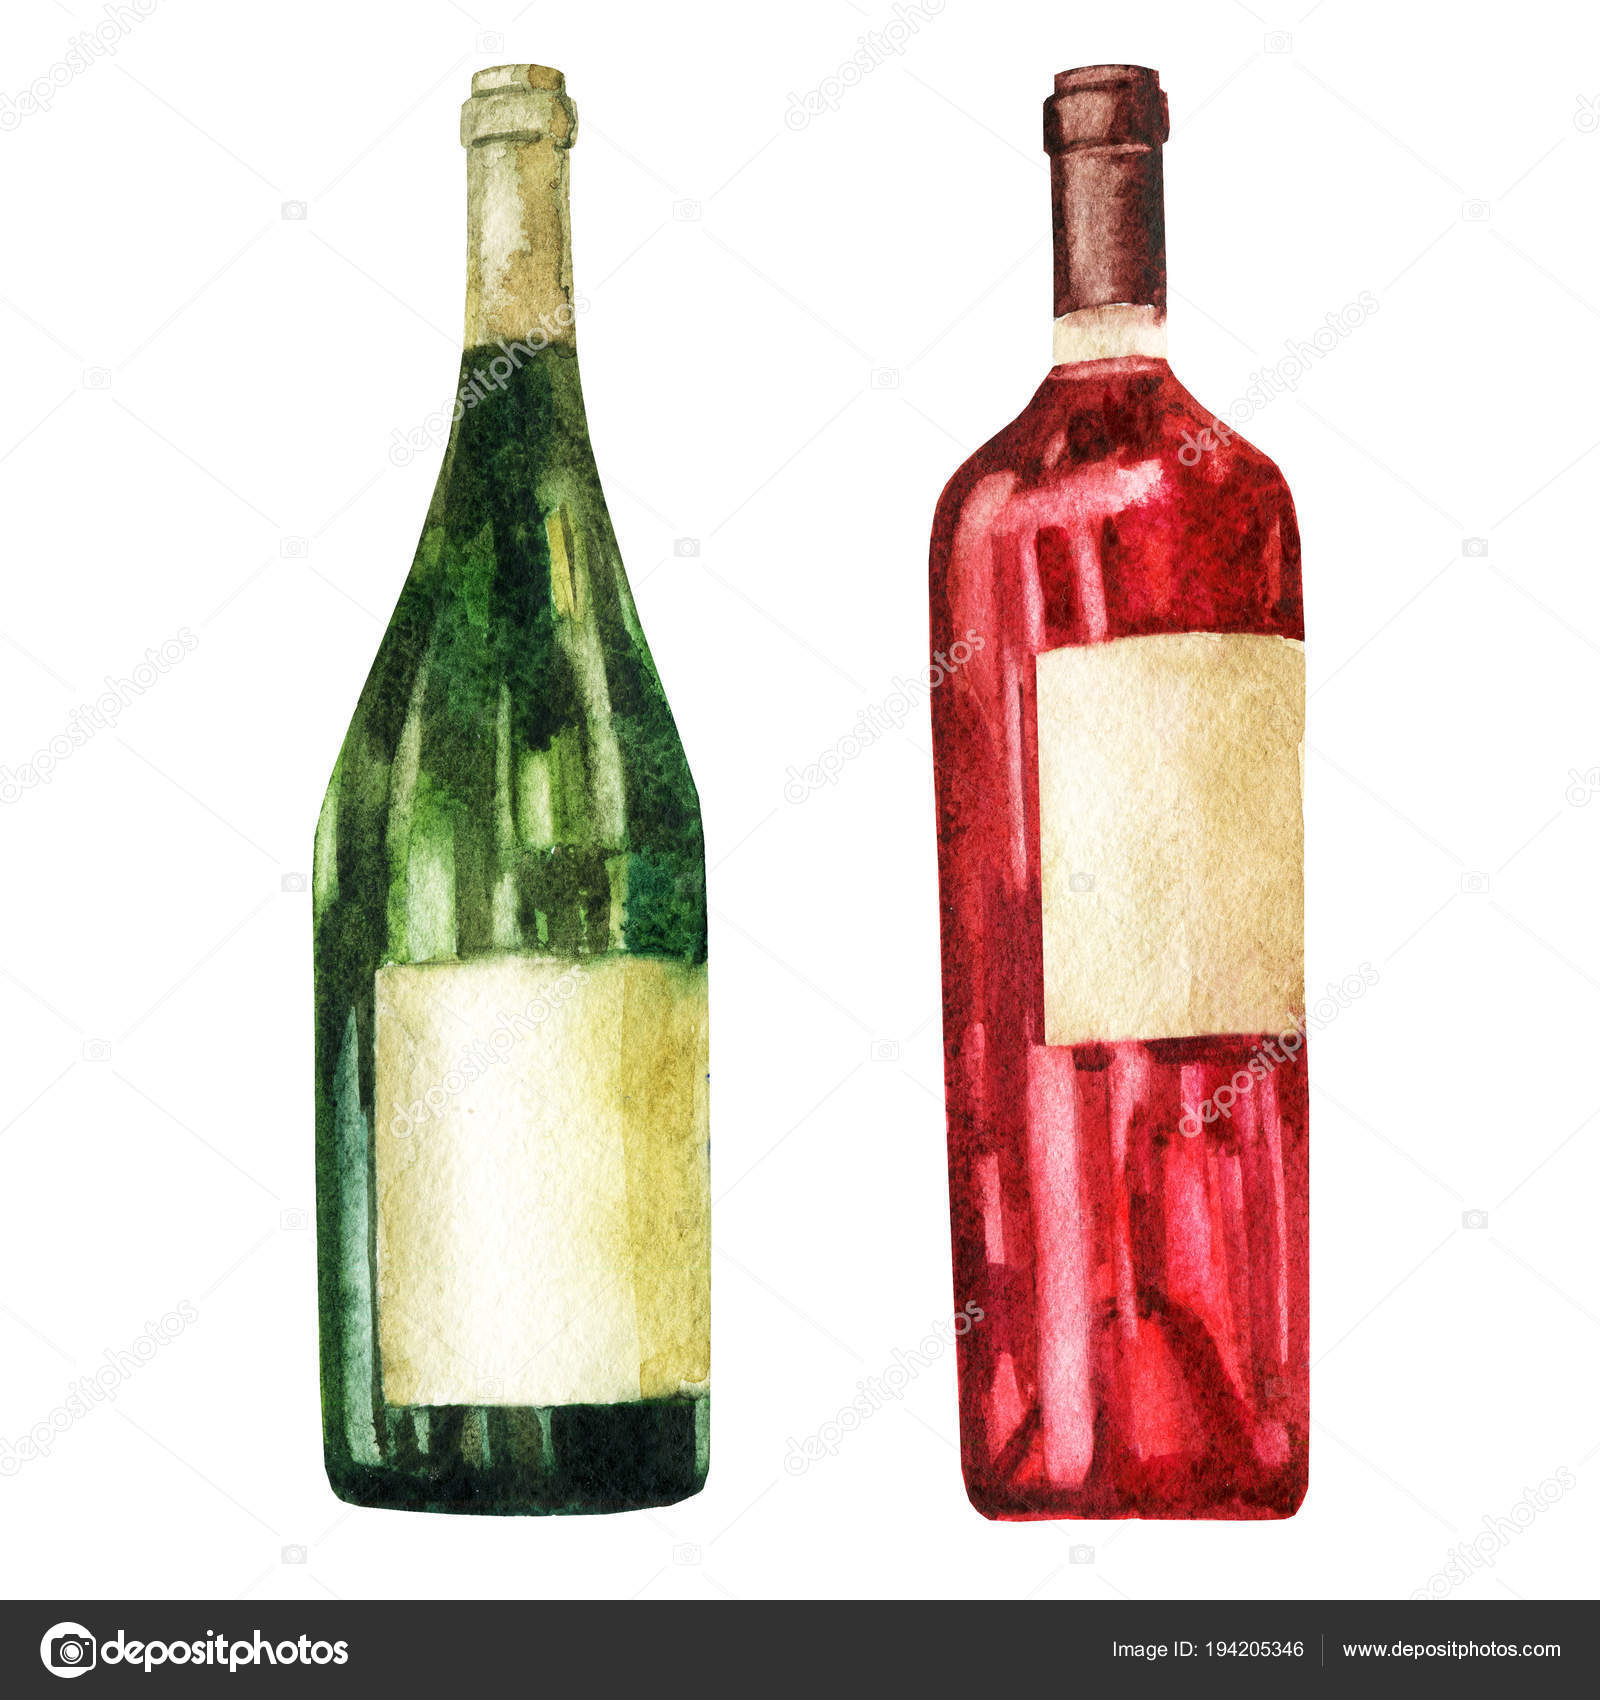 Watercolor Illustration Image Of Bottles Wine Stock Photo By C Margo Soleil Yandex Ru 194205346